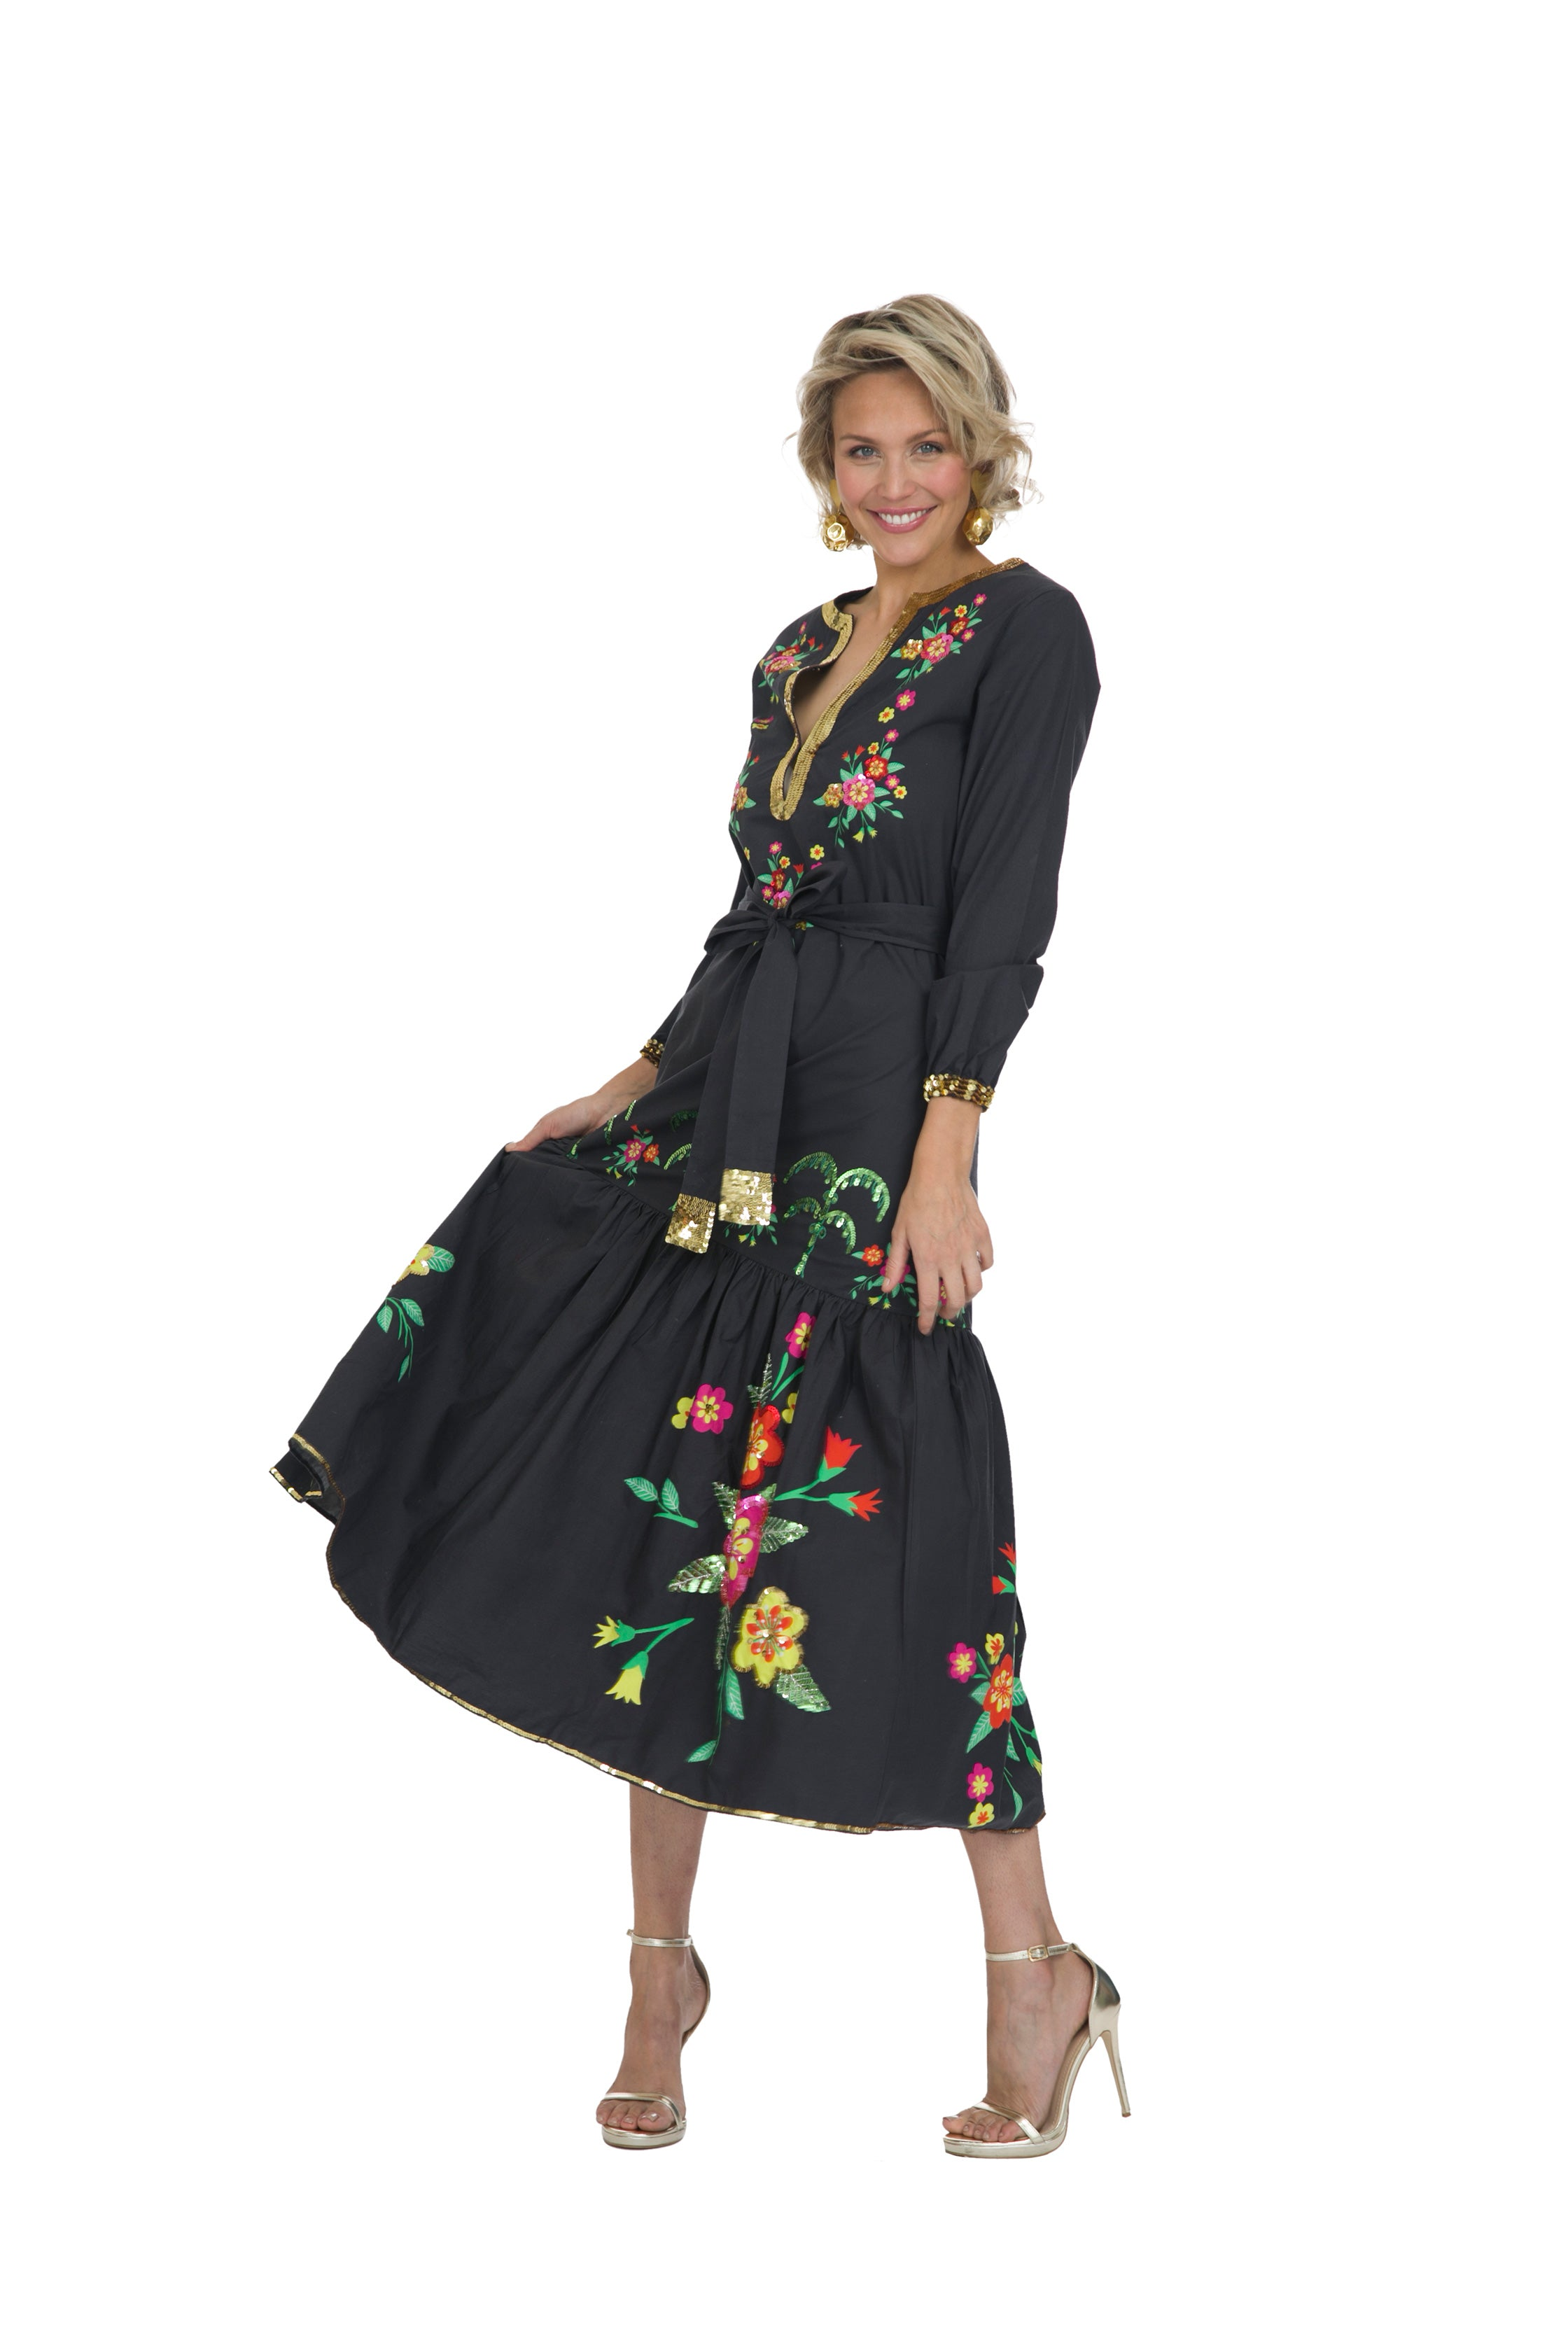 The Jungle Nights Long Sleeve Dress by Bonita Collective